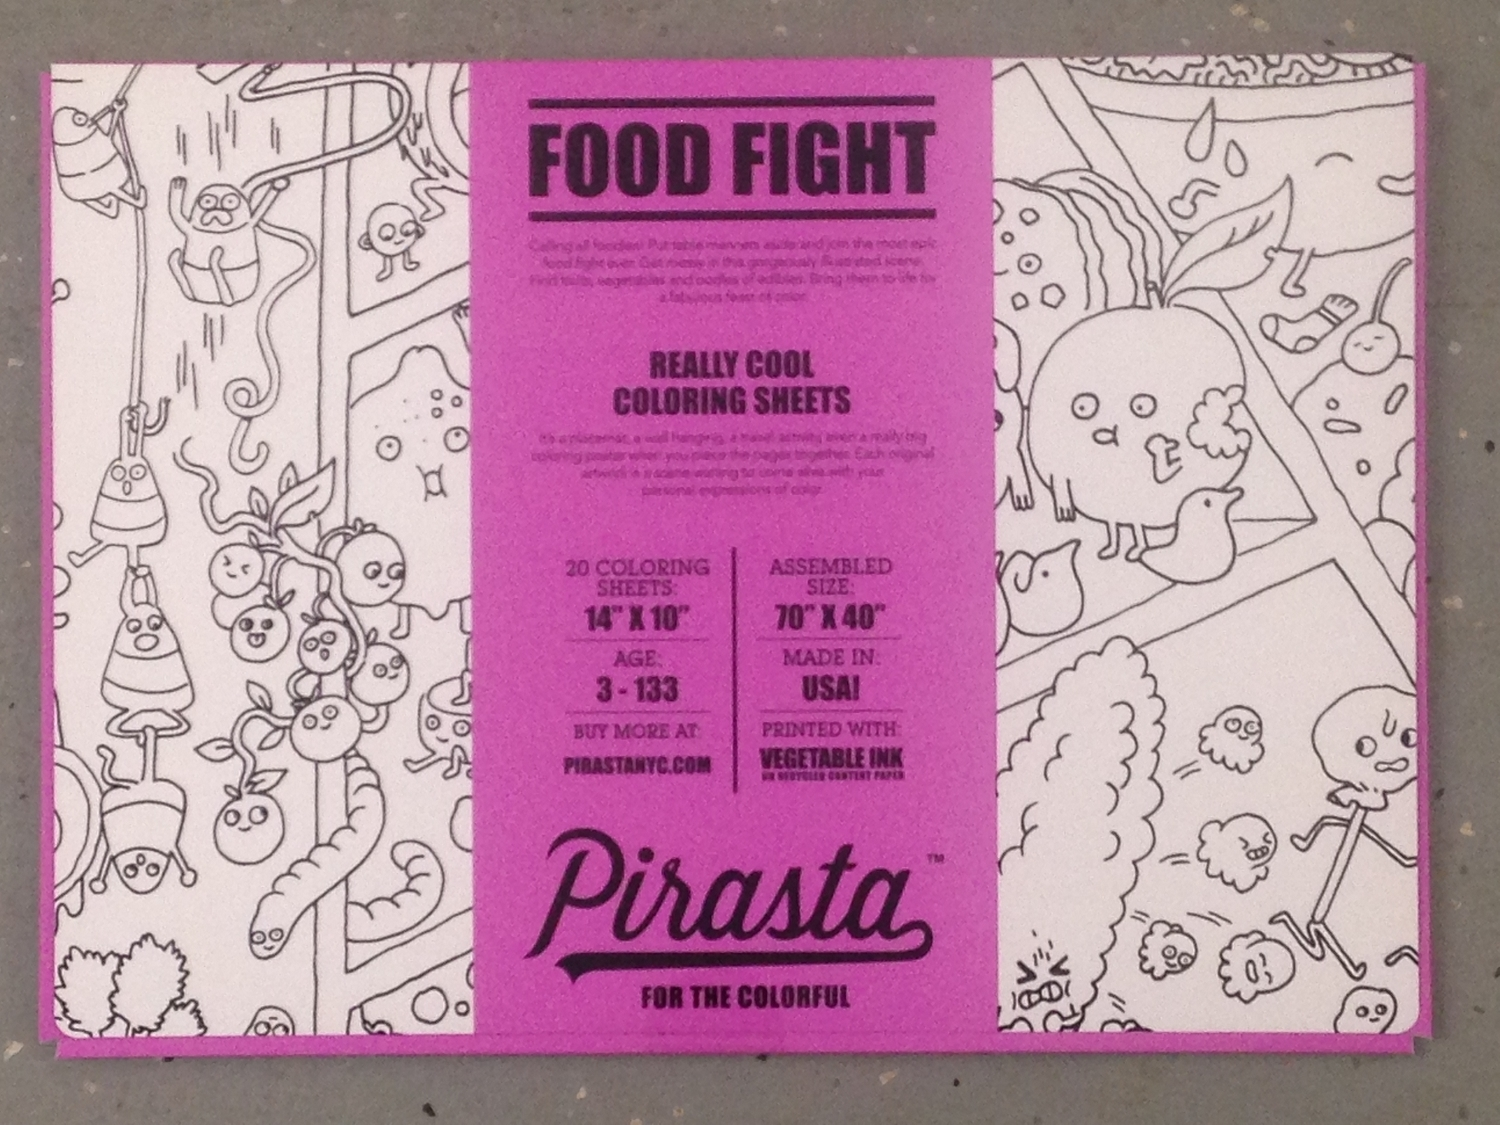 FOOD FIGHT COLORING PLACEMAT $20